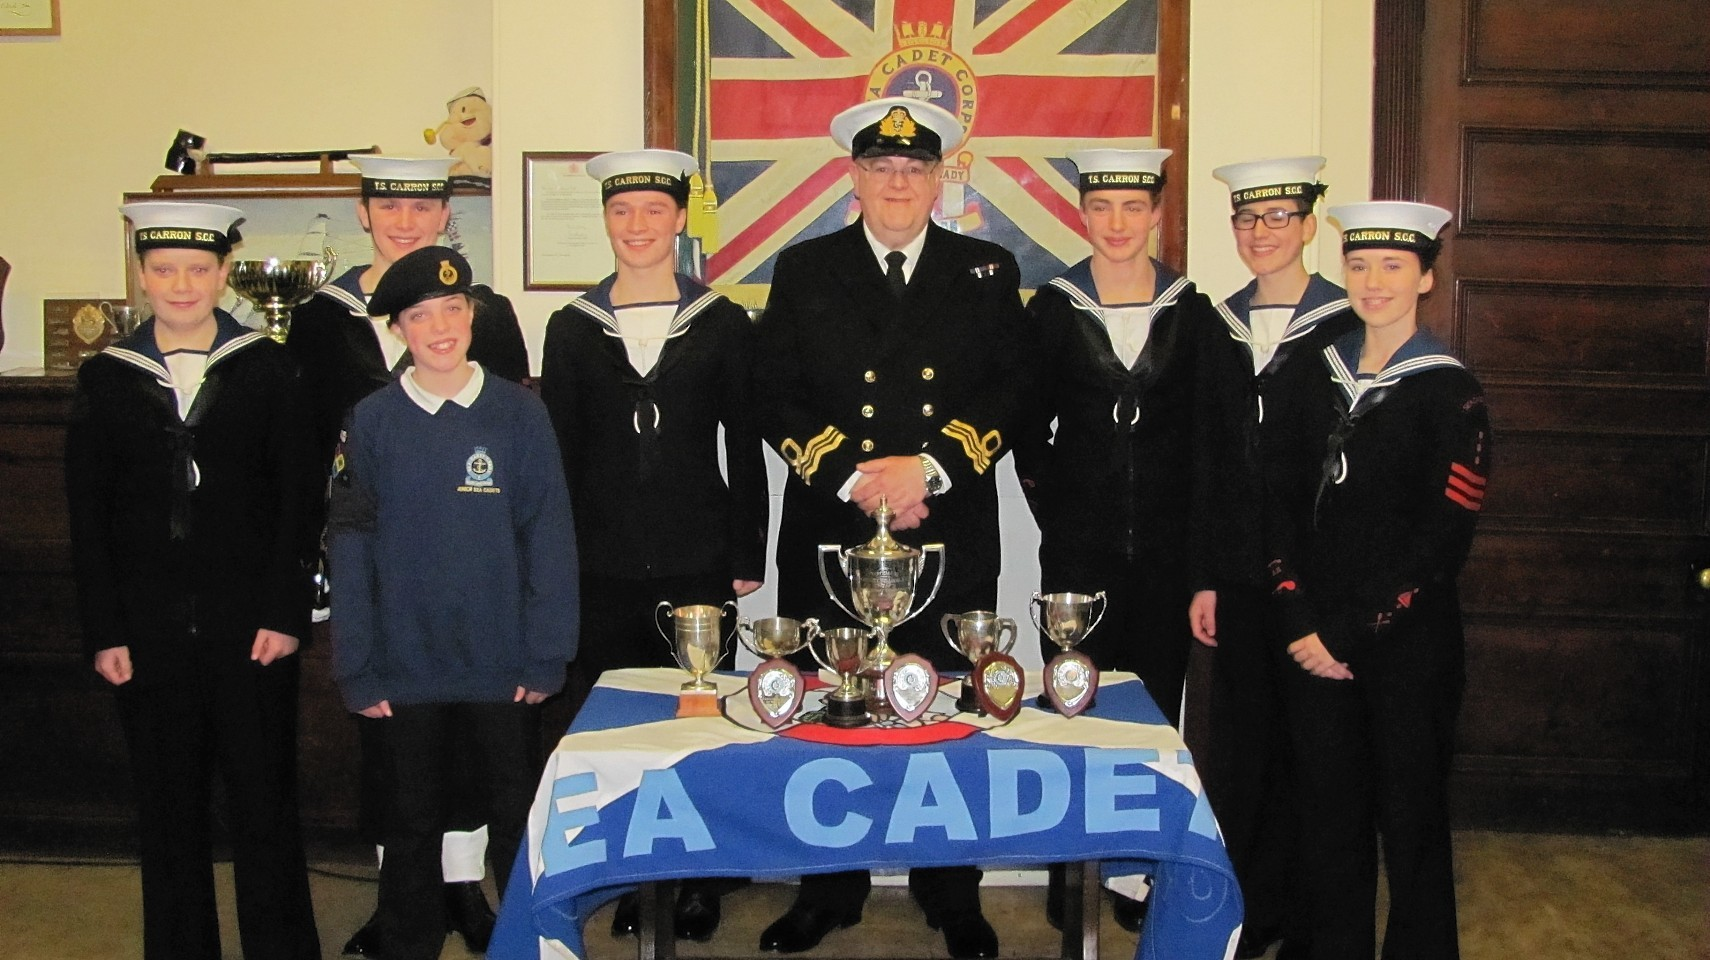 Stonehaven Sea Cadets have applied for £3,632